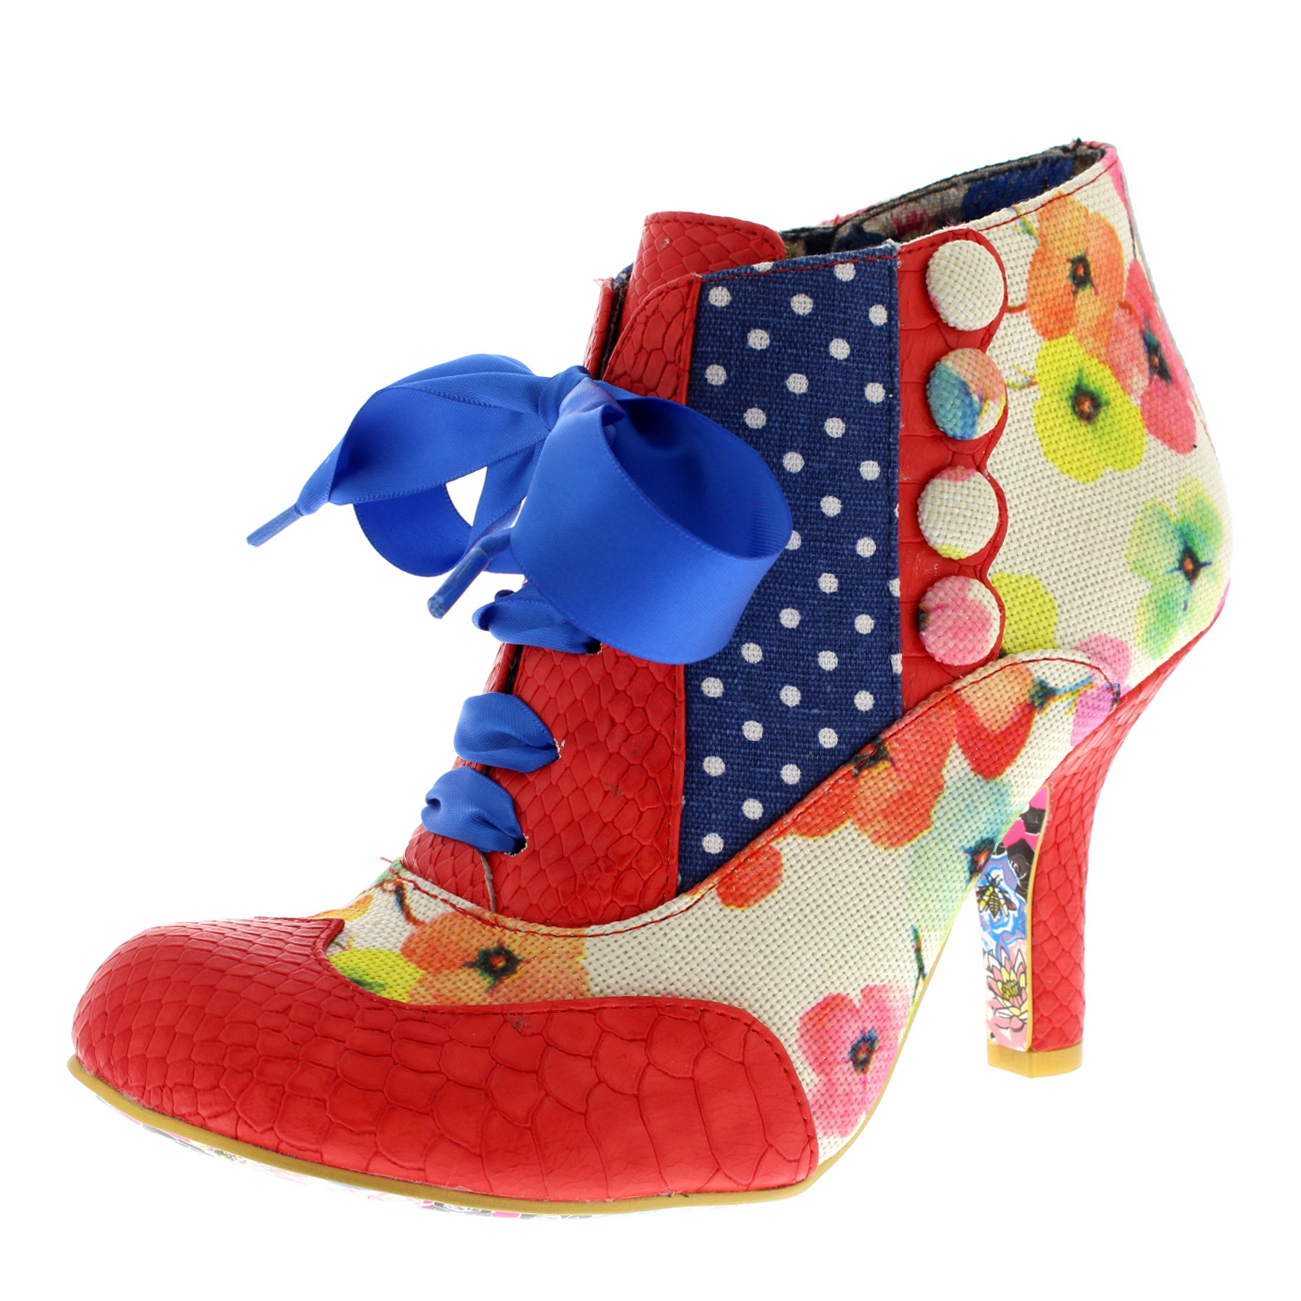 Damenschuhe Irregular Choice Blair Elfglow Mid Heels Floral Court Schuhes UK 3.5-8.5